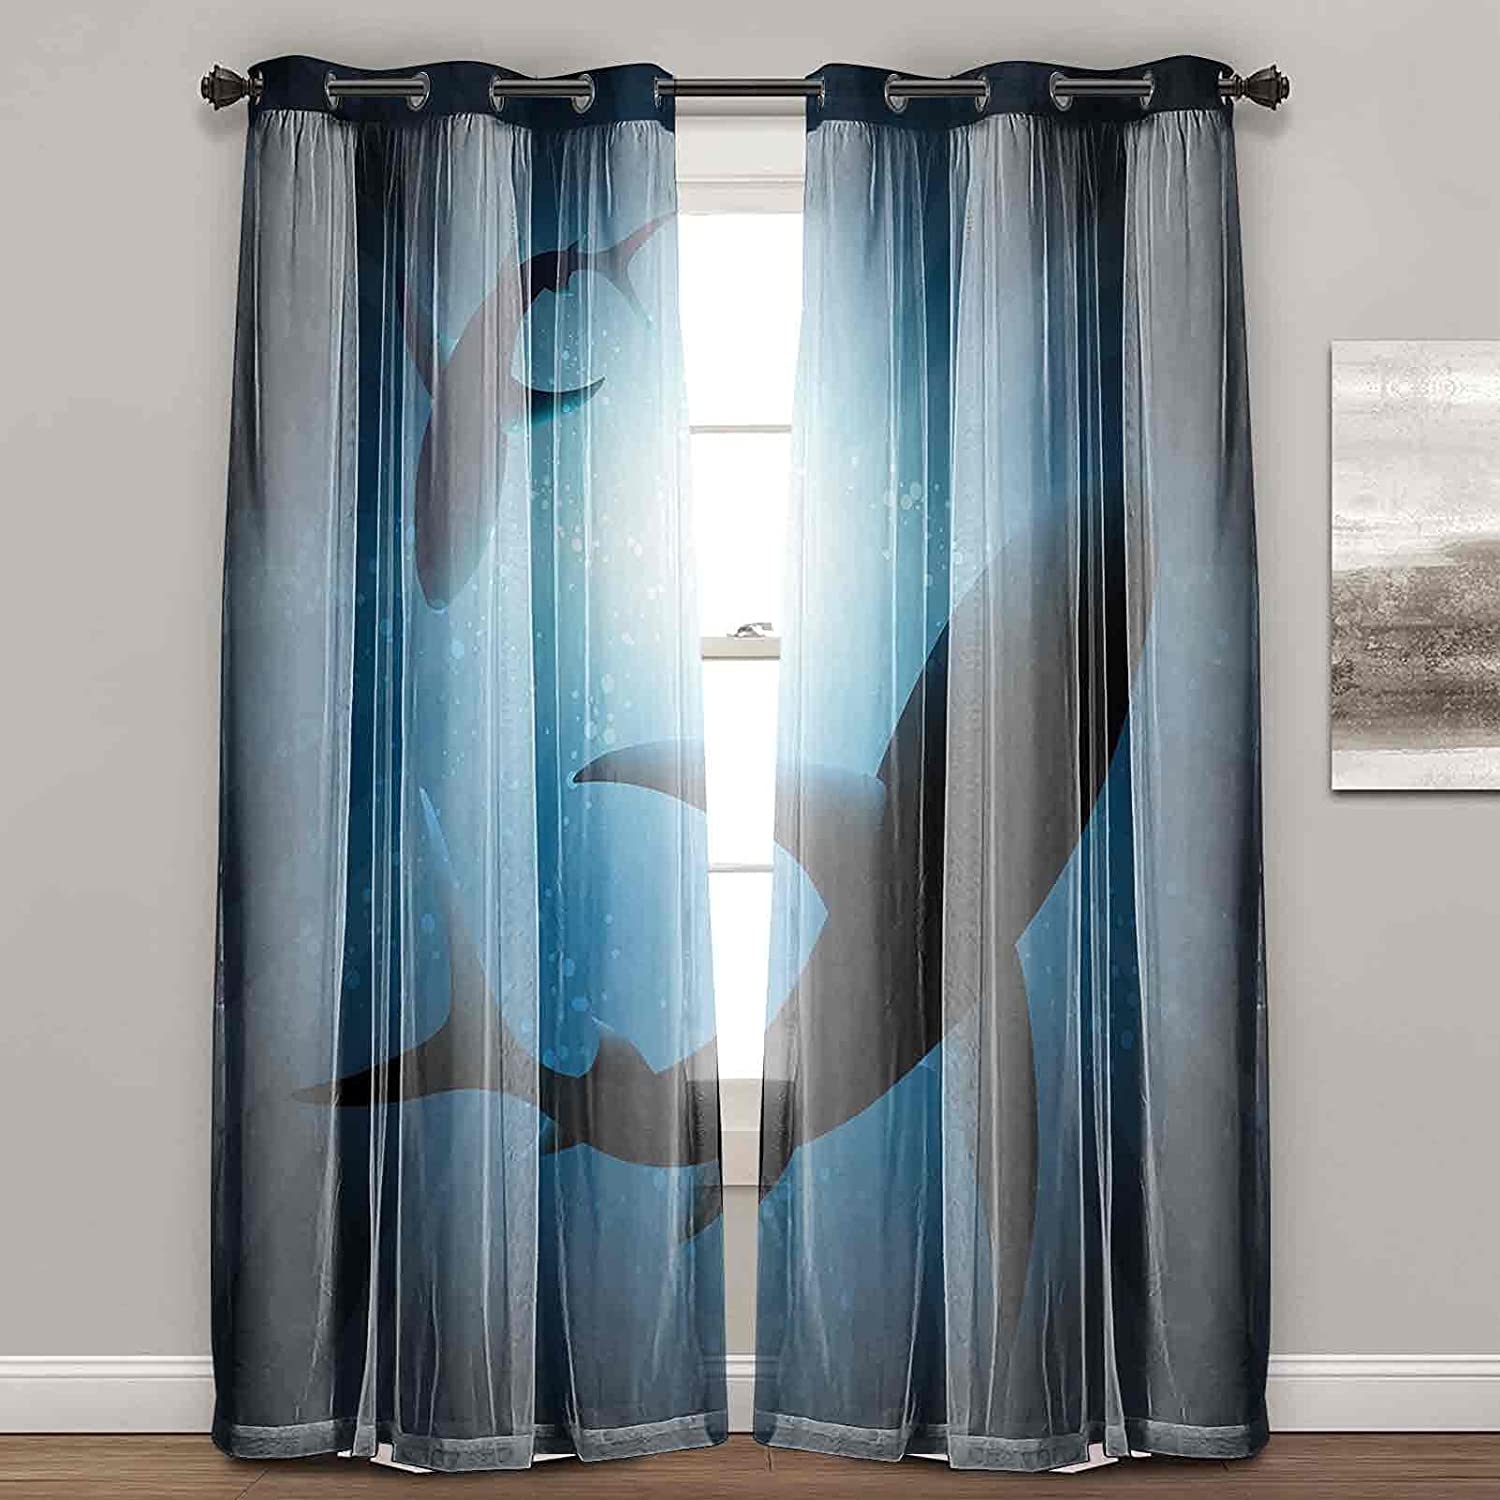 Curtains for Living Room Silhouette of T Houston Mall Swimming The at Max 81% OFF Fishes